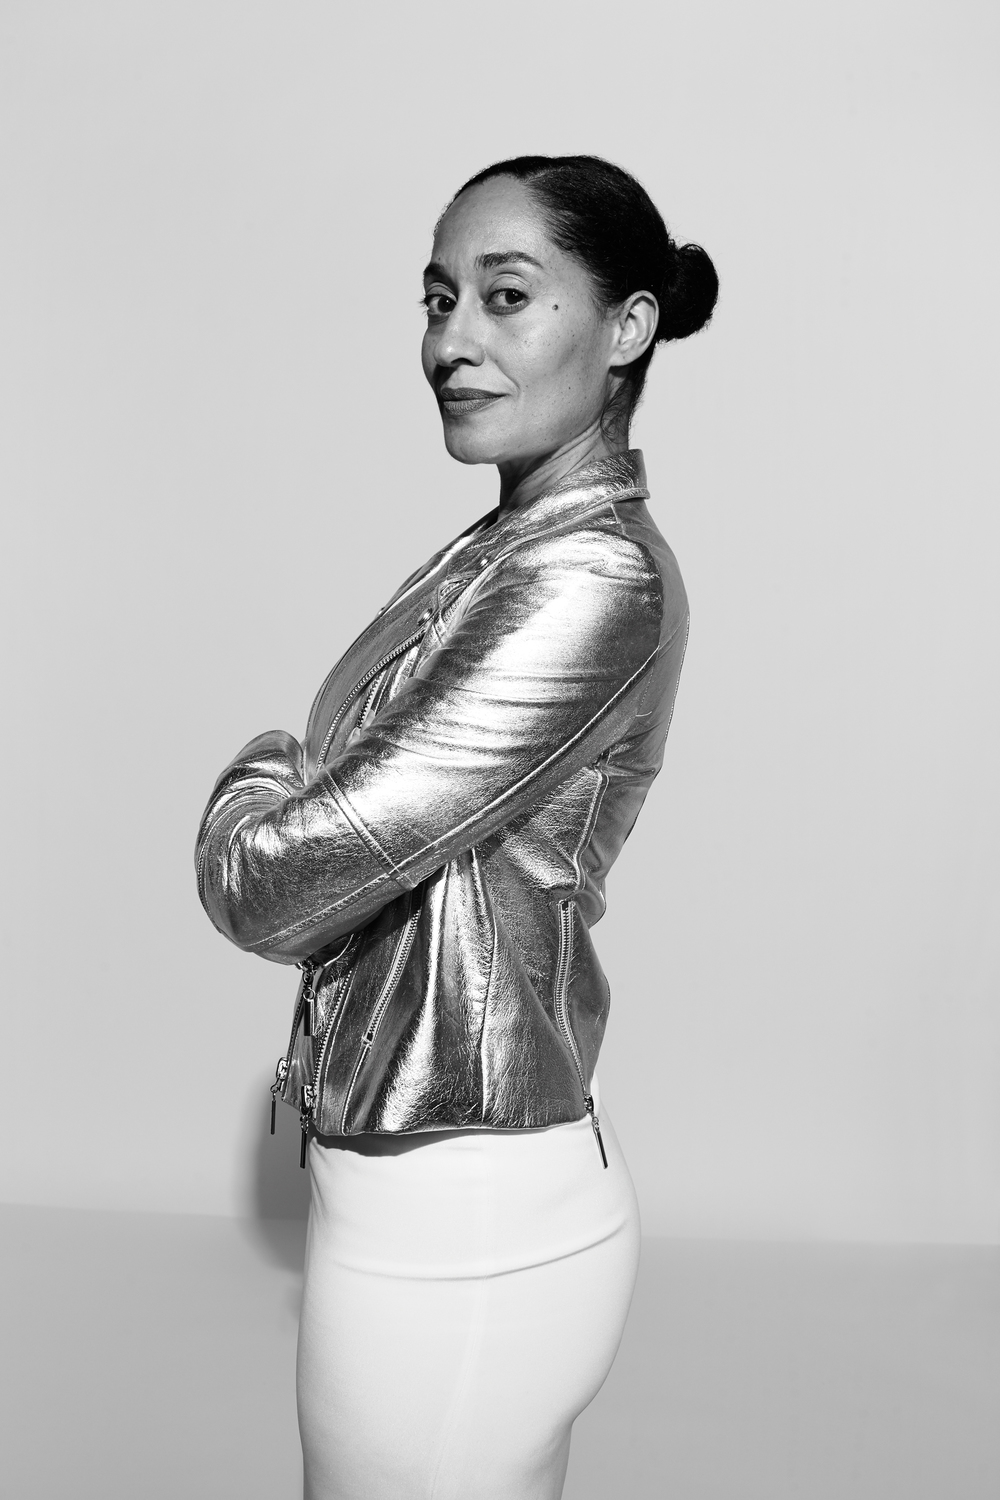 Tracee Ellis Ross photographed by Kate Owen black and white portrait #powertrip Marie Claire Magazine portraits of power